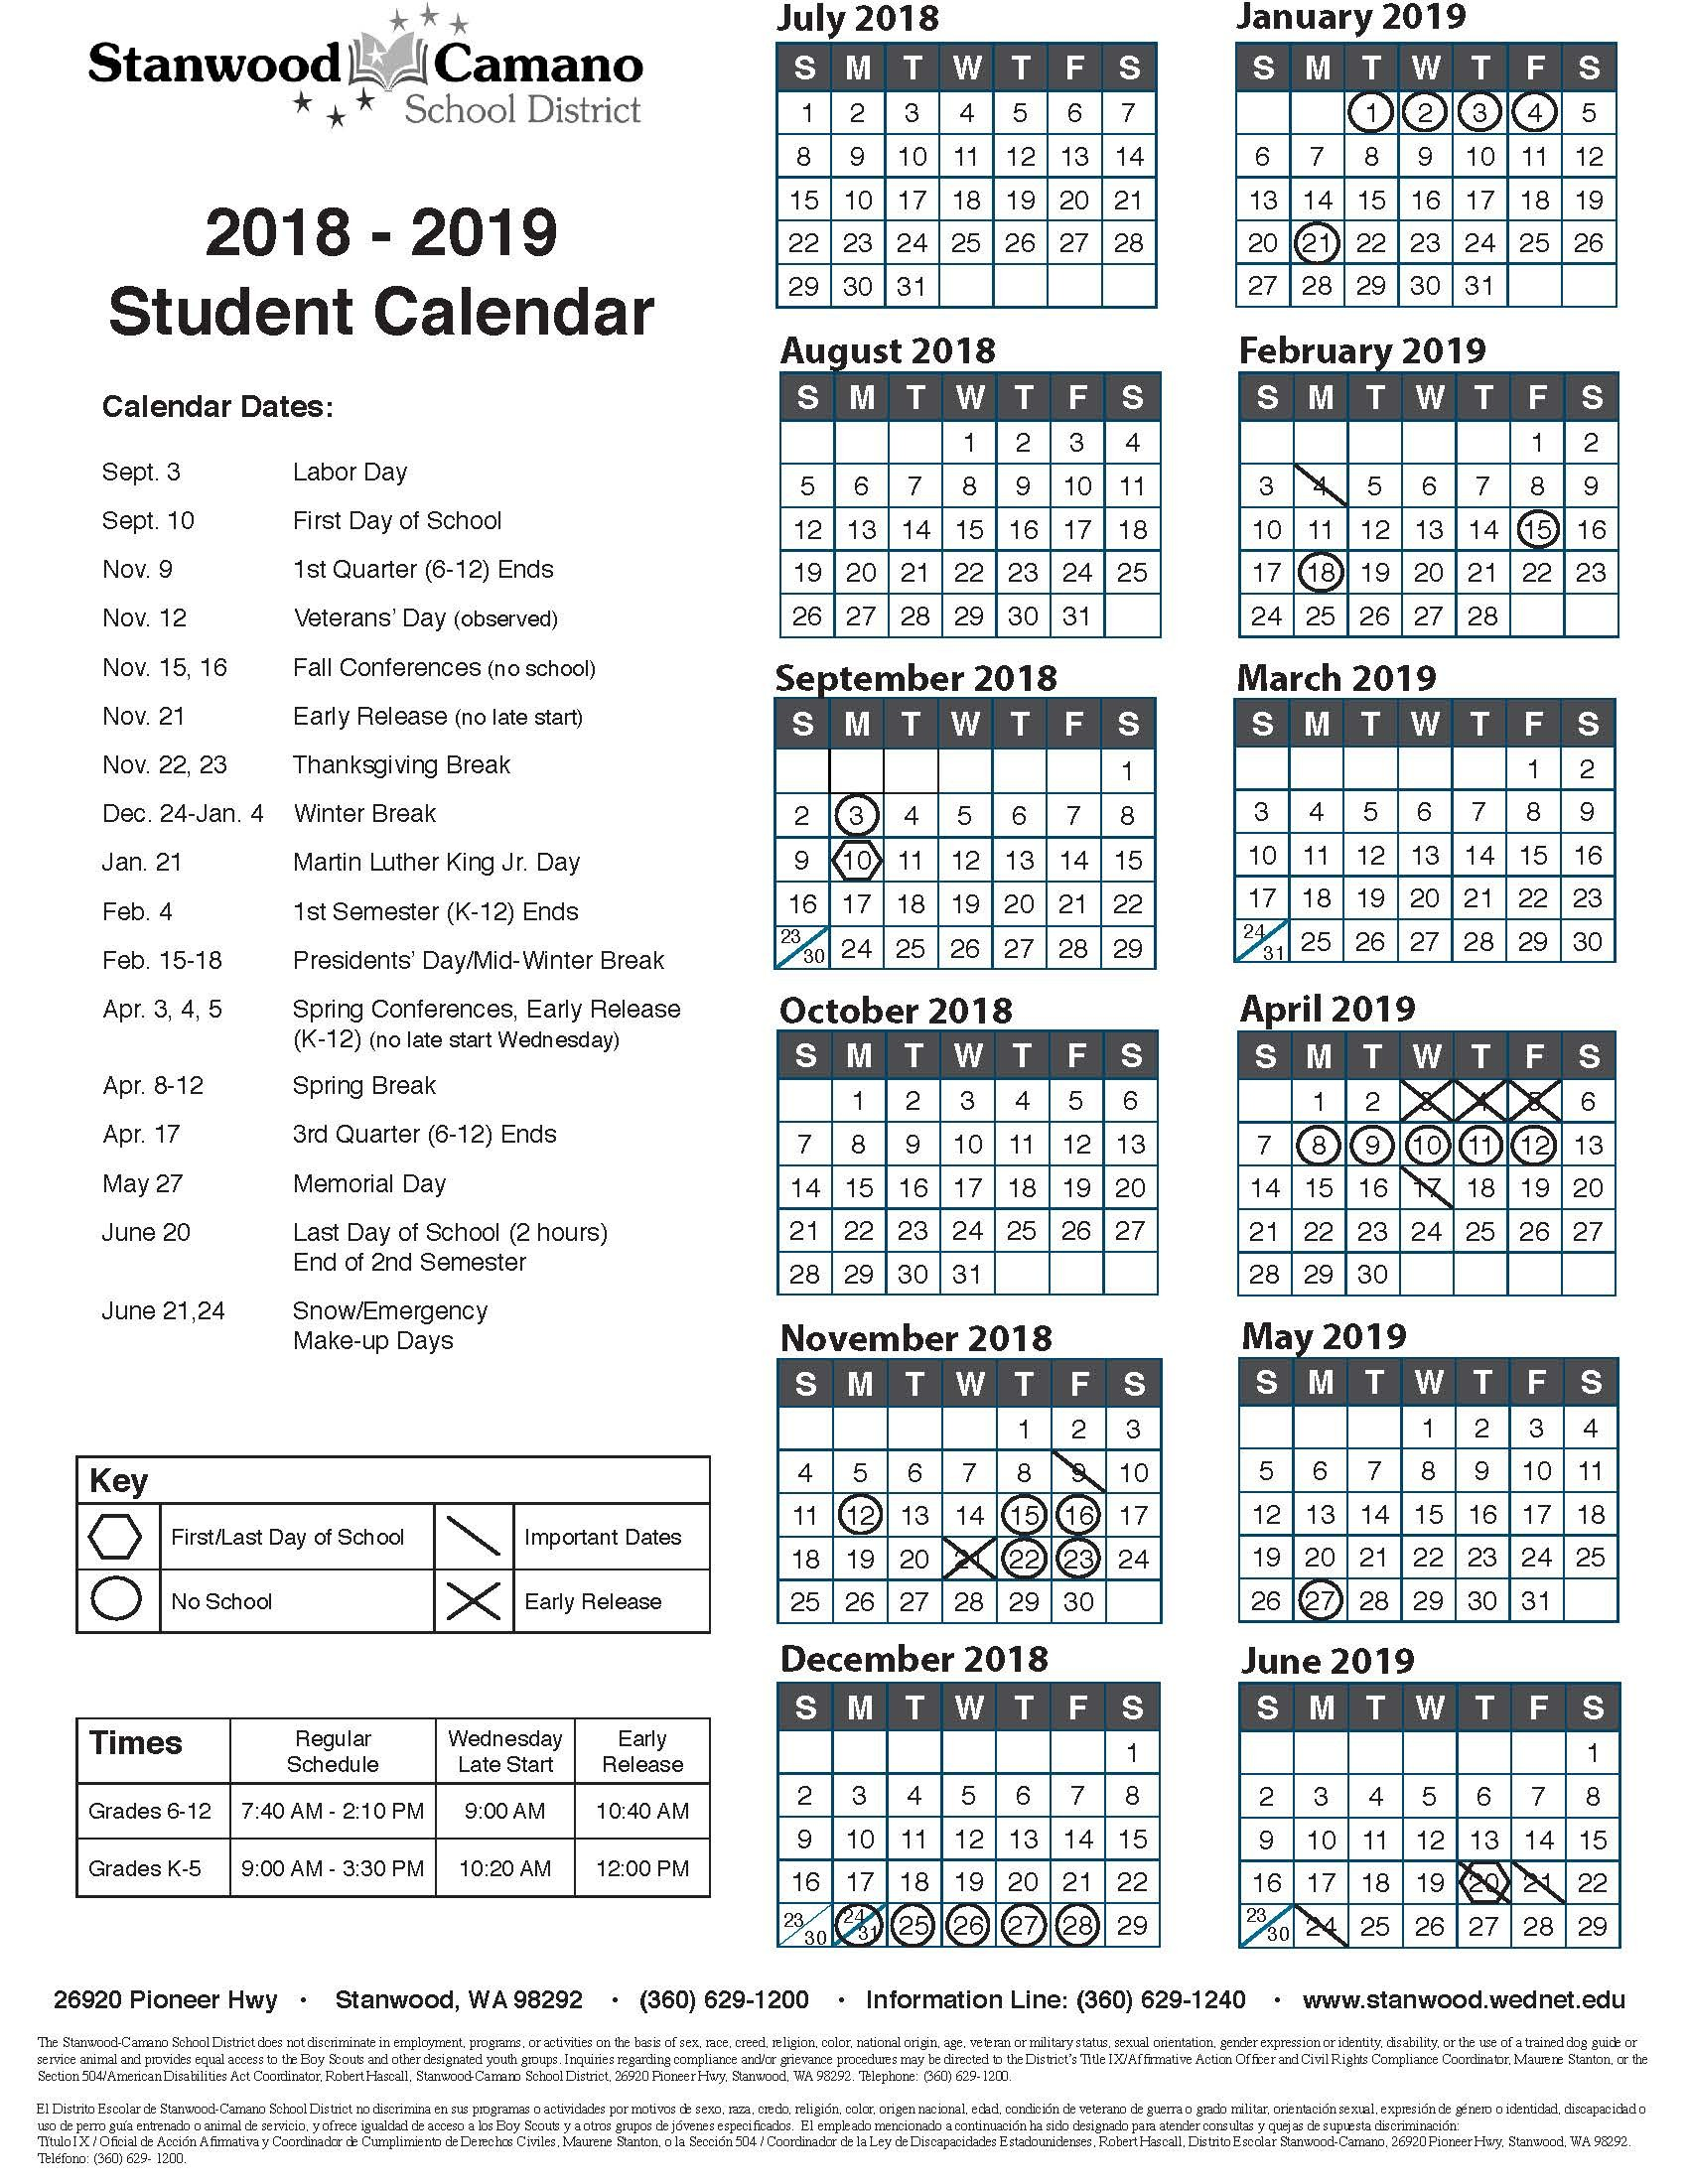 Student Calendar Stanwood Camano School District